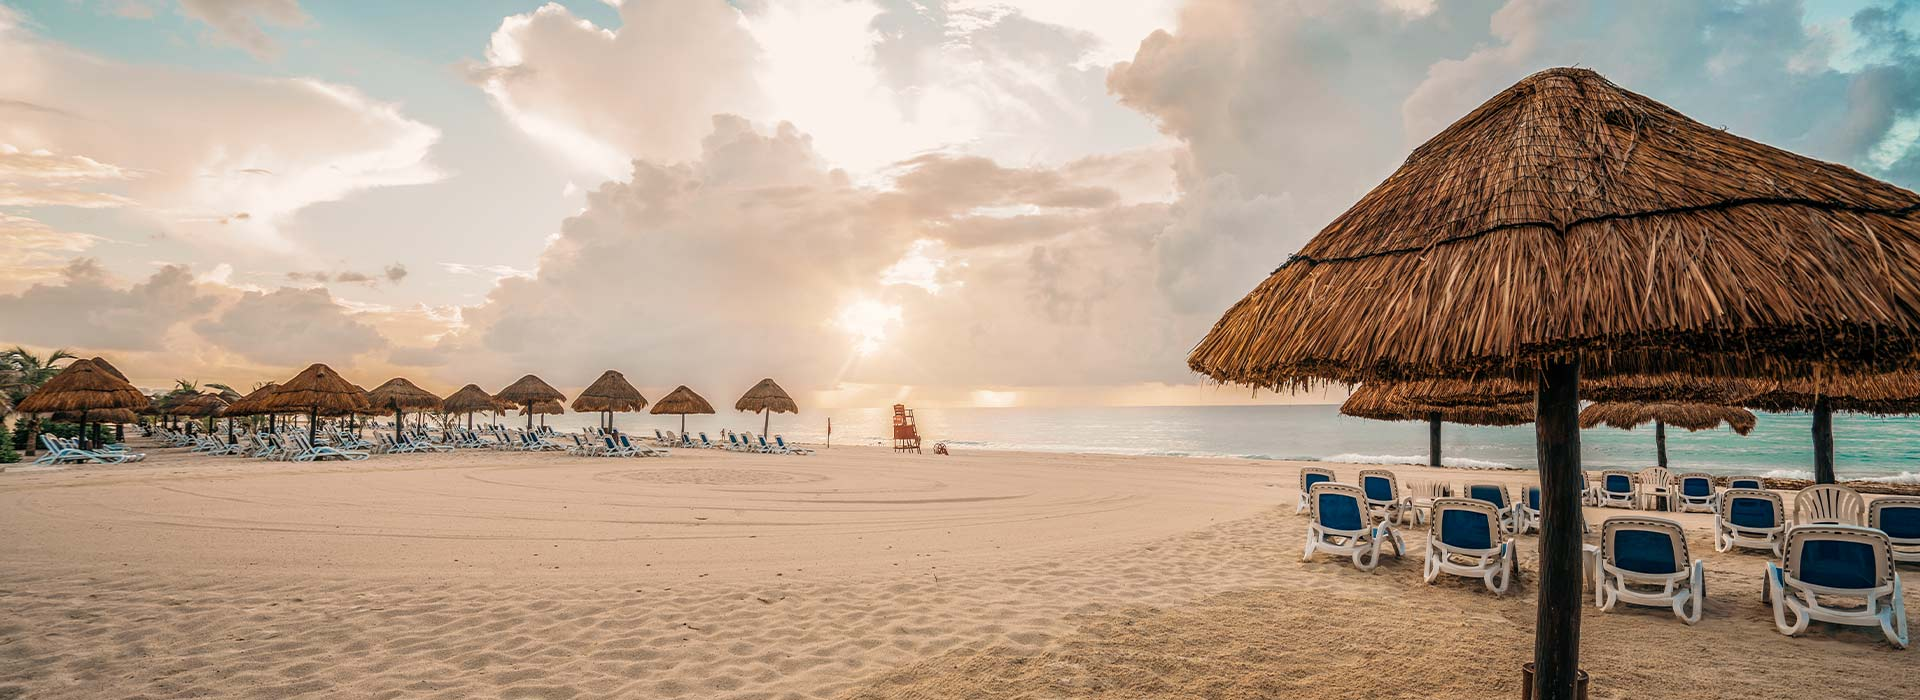 The Royal Sands is a Cancun all inclusive resort facing the best beaches in Cancun